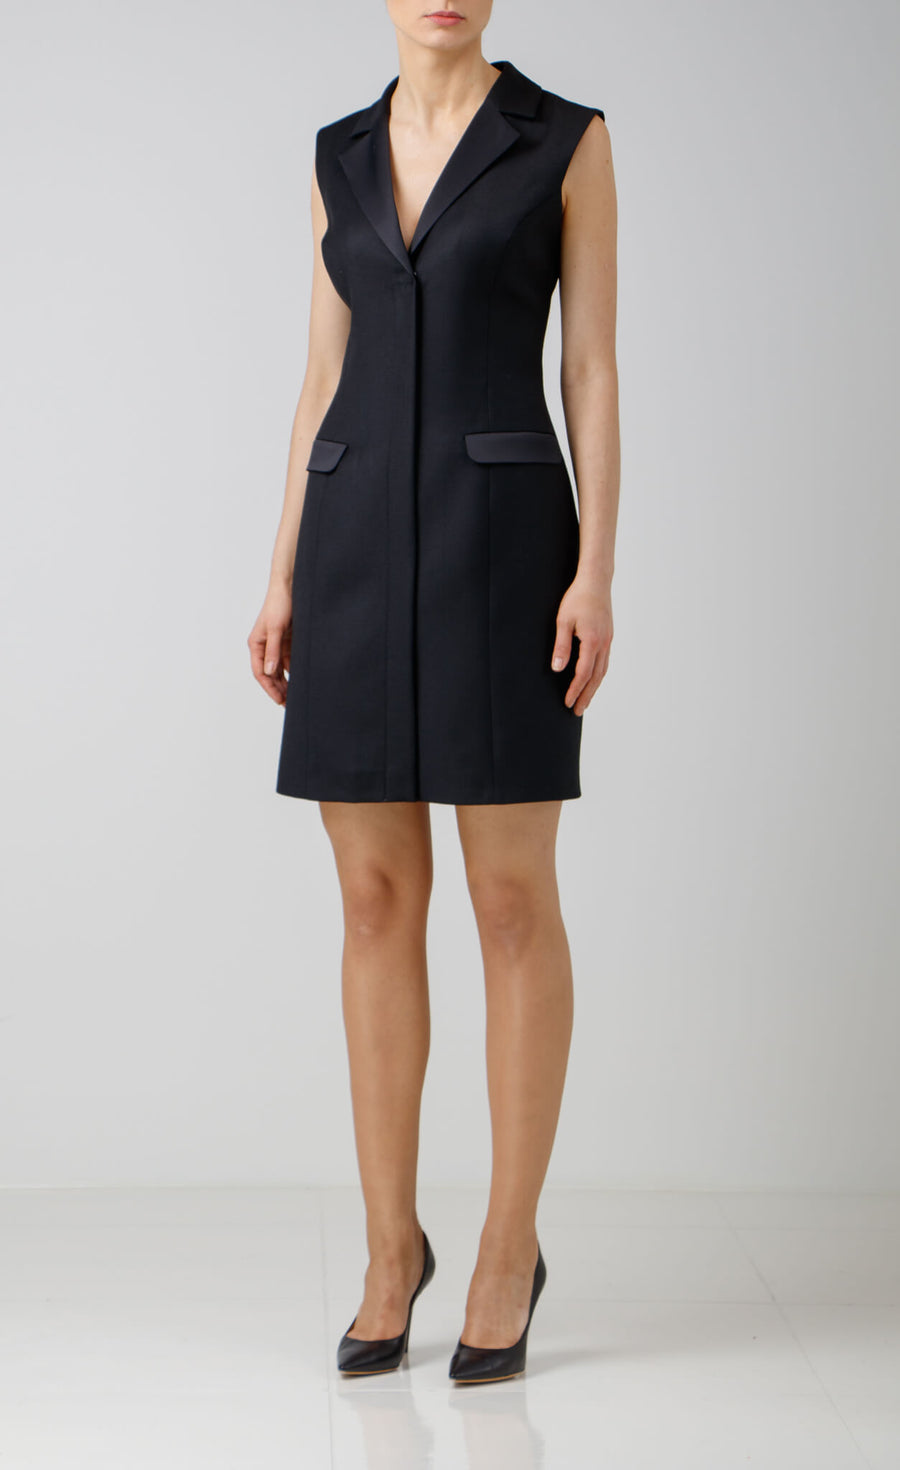 Sleveless Black Wool Blazer Dress